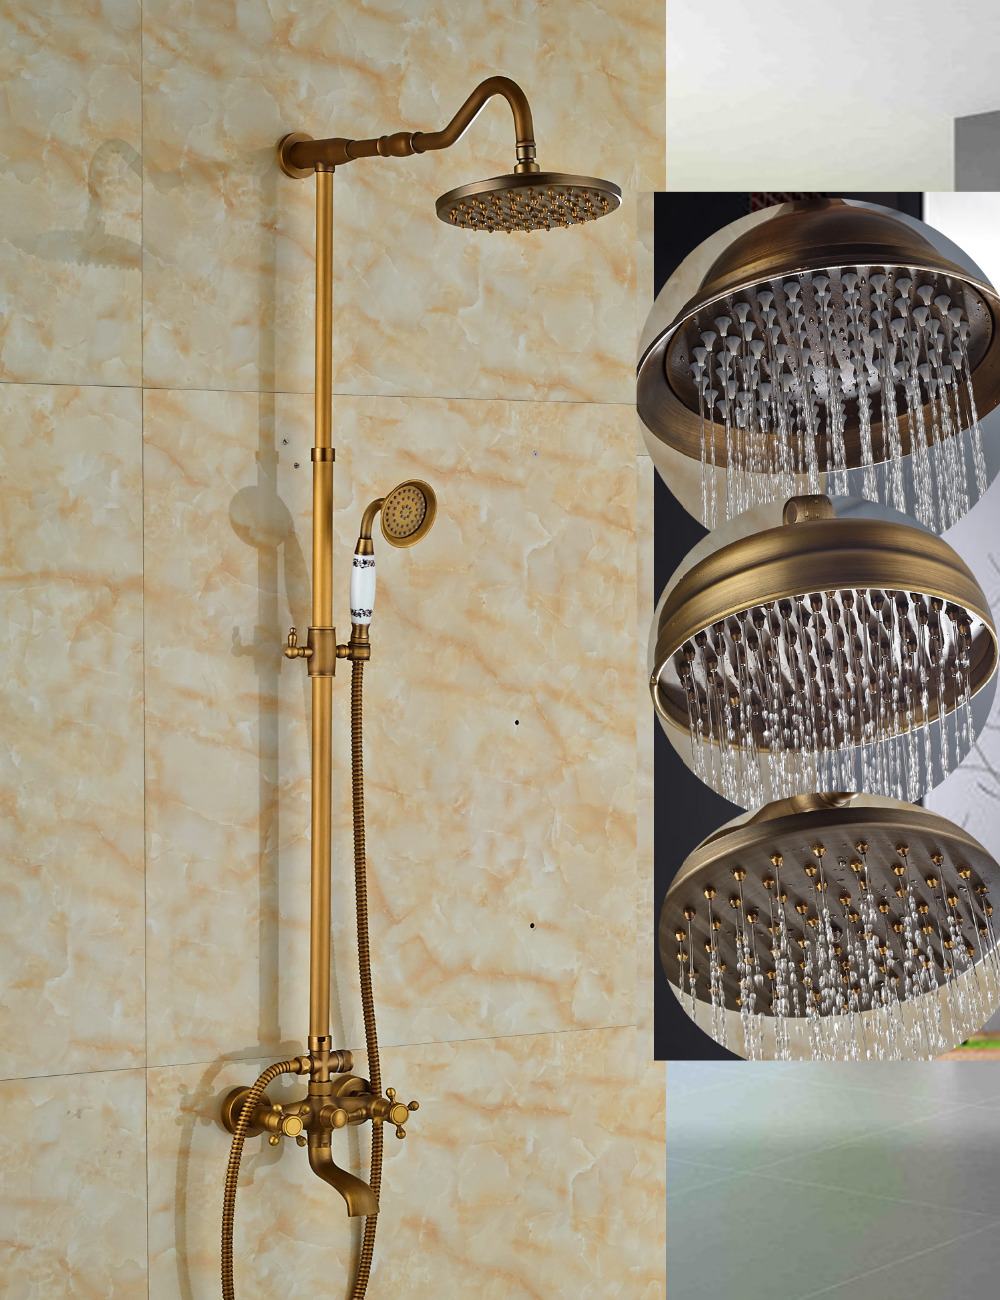 Wholesale And Retail Antique Brass Rain Shower Faucet Wall Mounted 8 Sprayer Tub Spout Dual Cross Handles